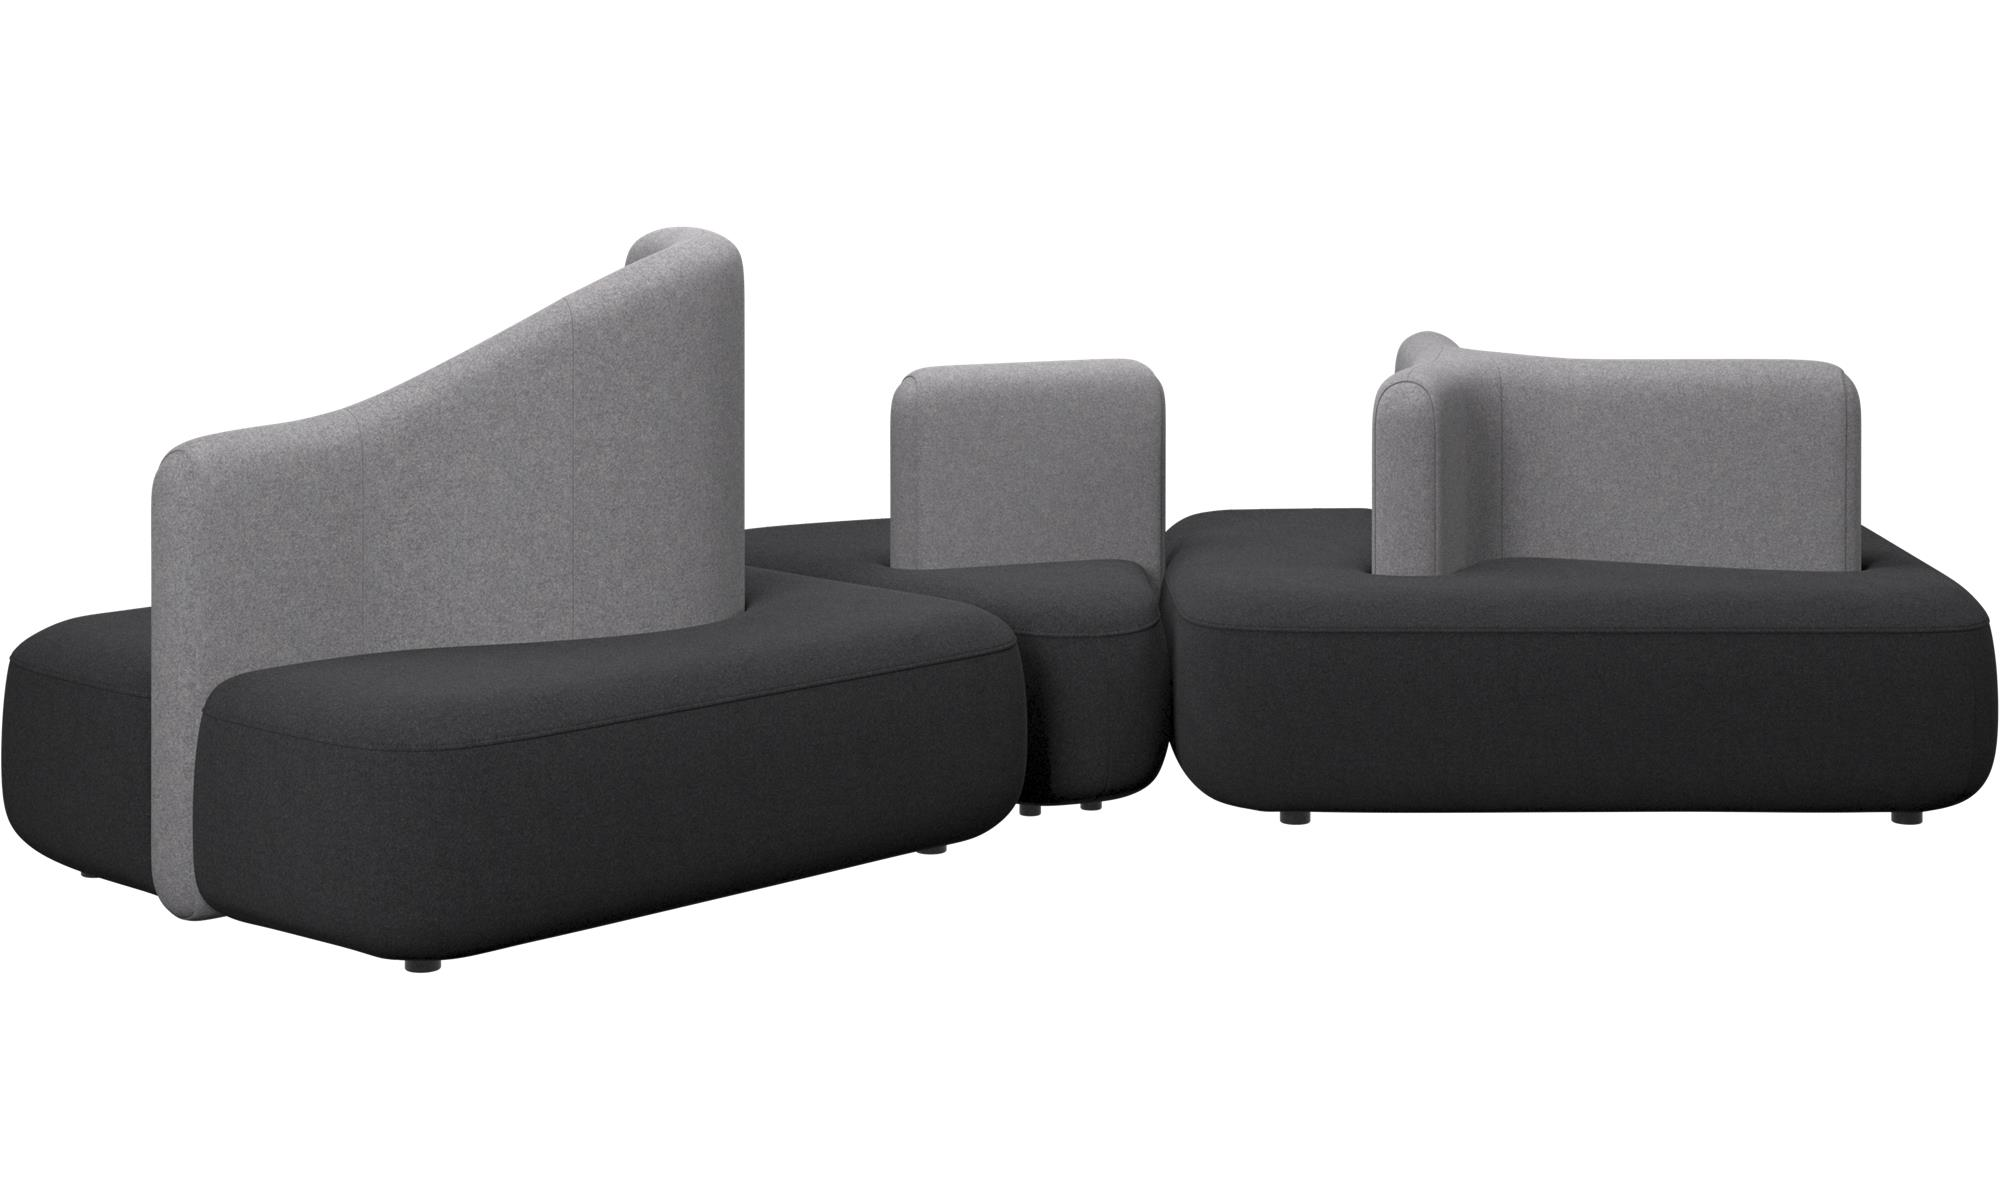 Sofa ottawa modular sofas ottawa sofa boconcept thesofa for Modern sectional sofa ottawa